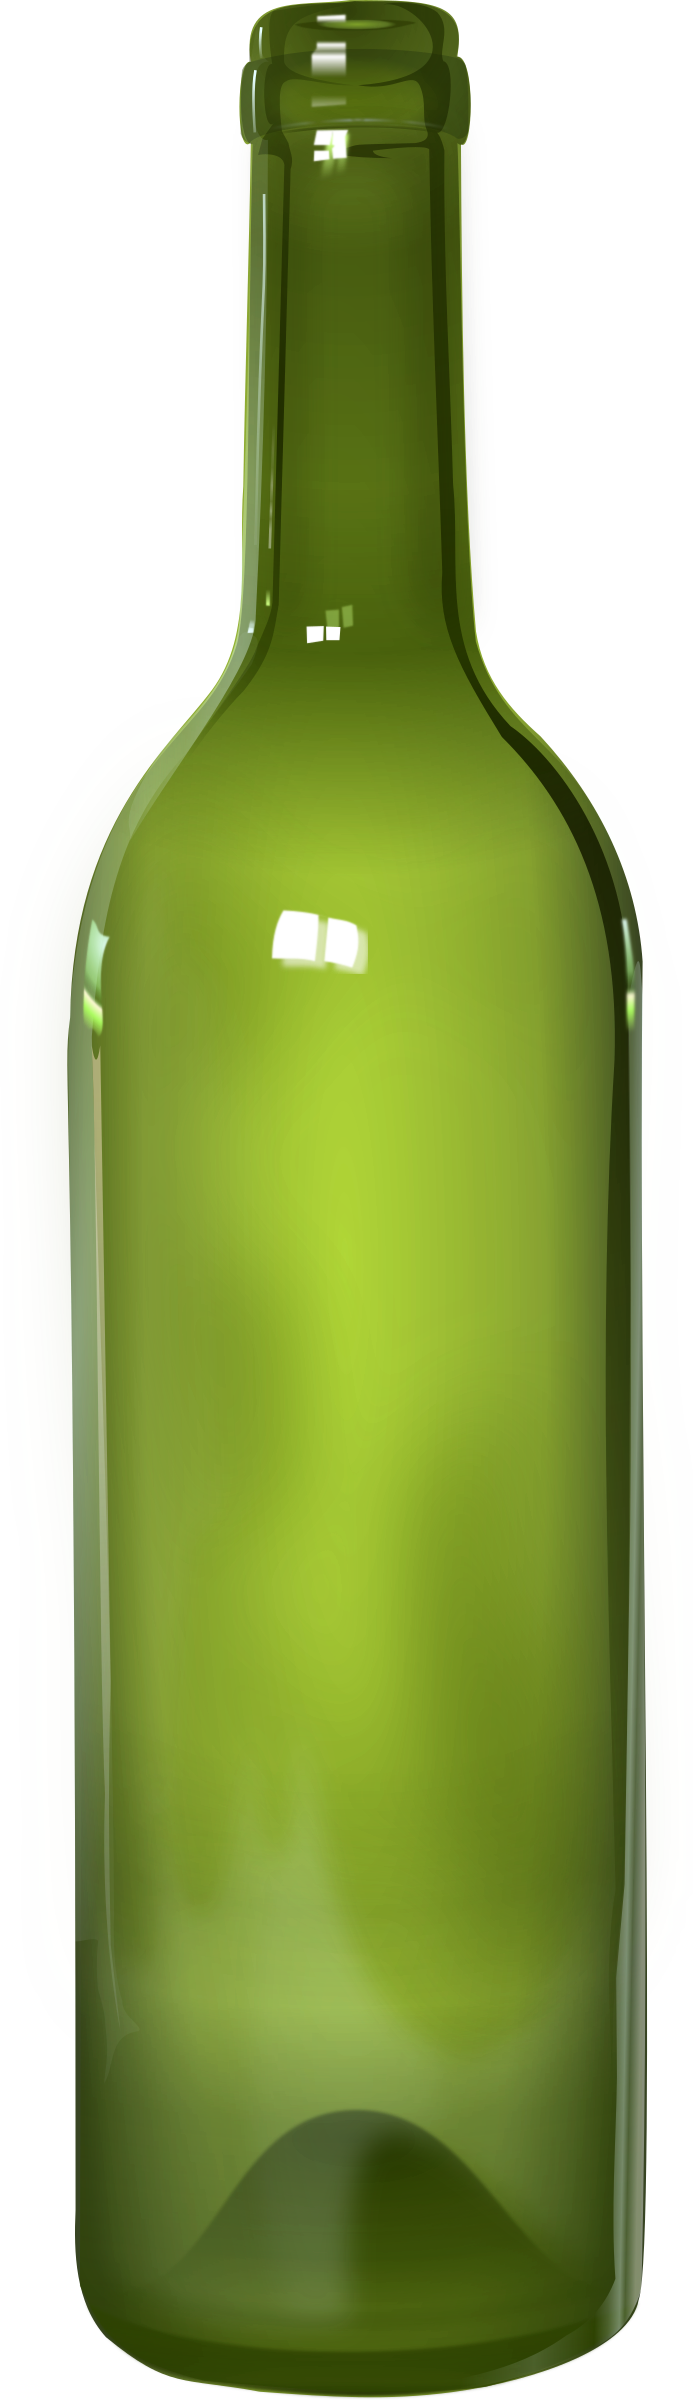 Bottle - detailed by metalorg